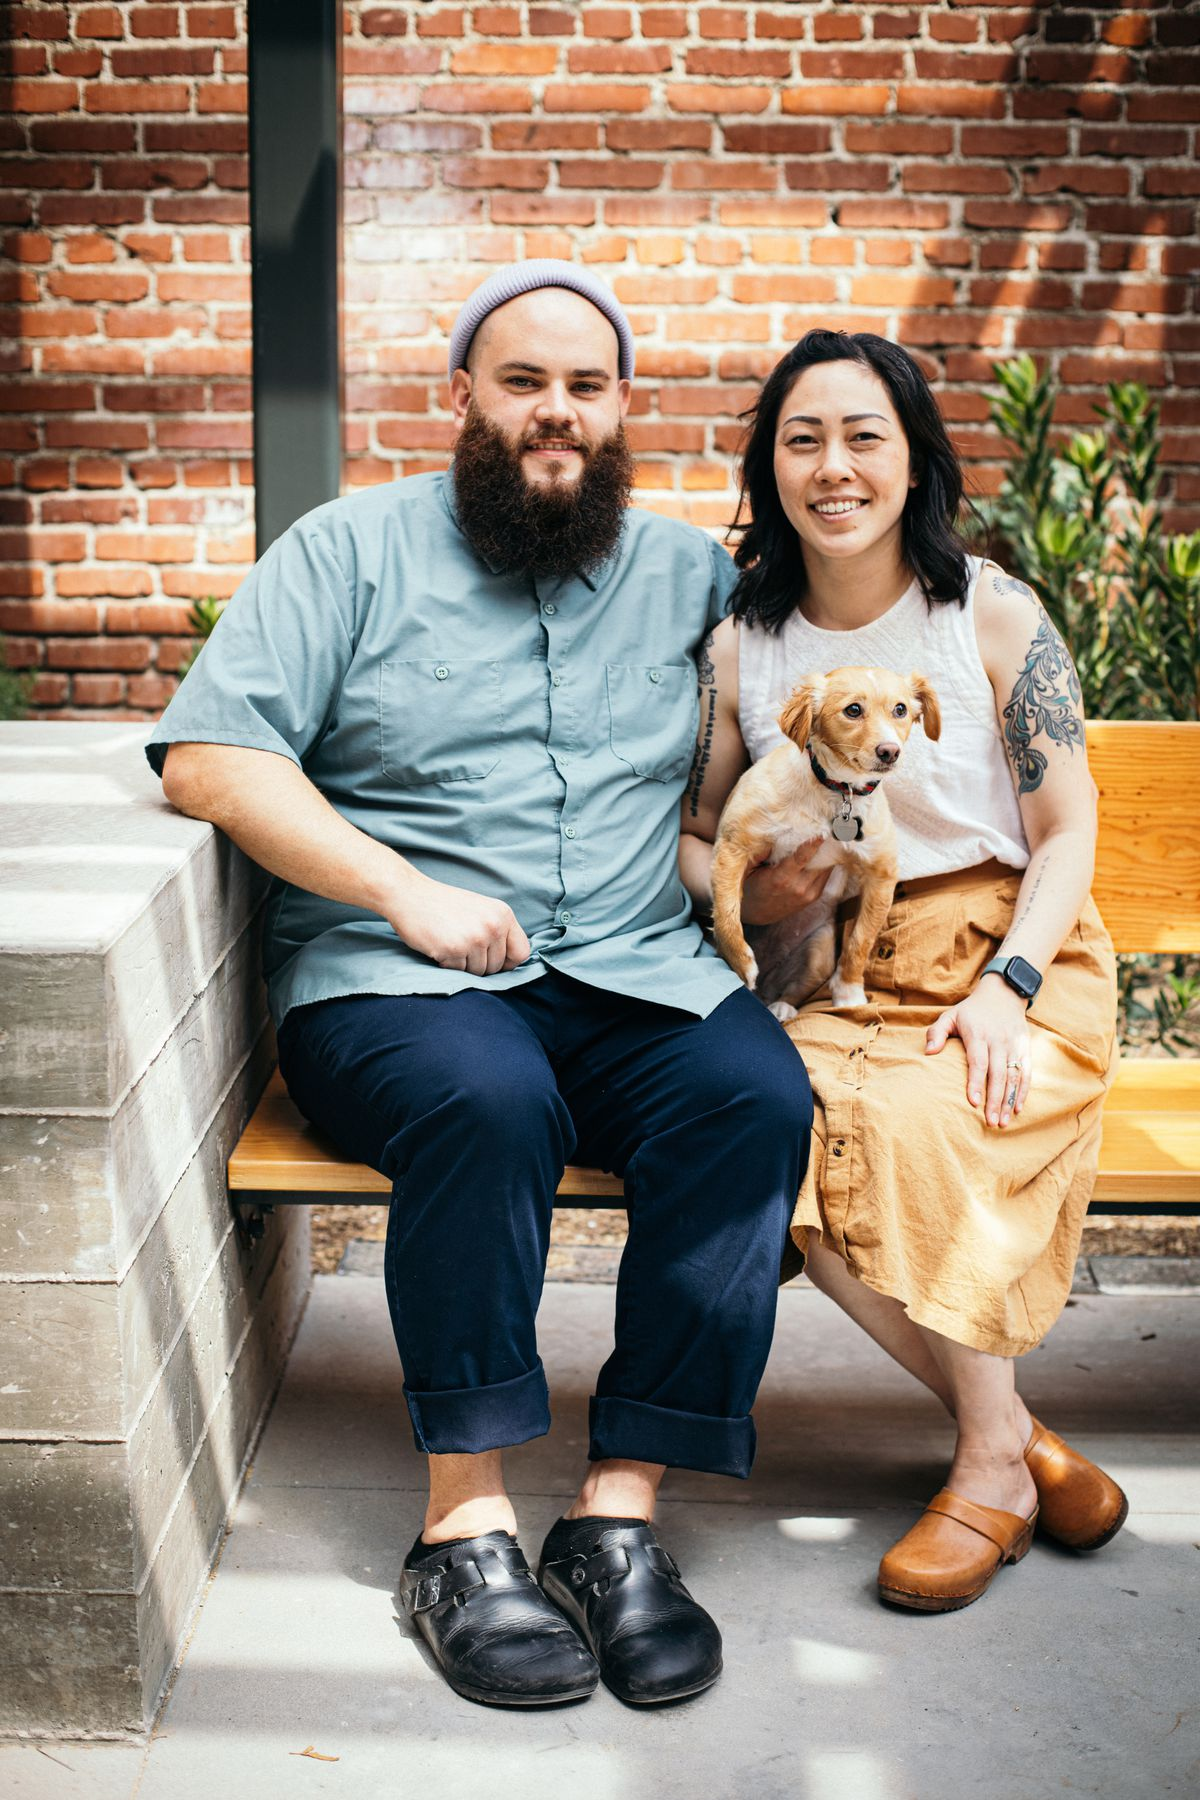 A pair of chefs hold a dog while sitting in front of a brick wall at their restaurant.